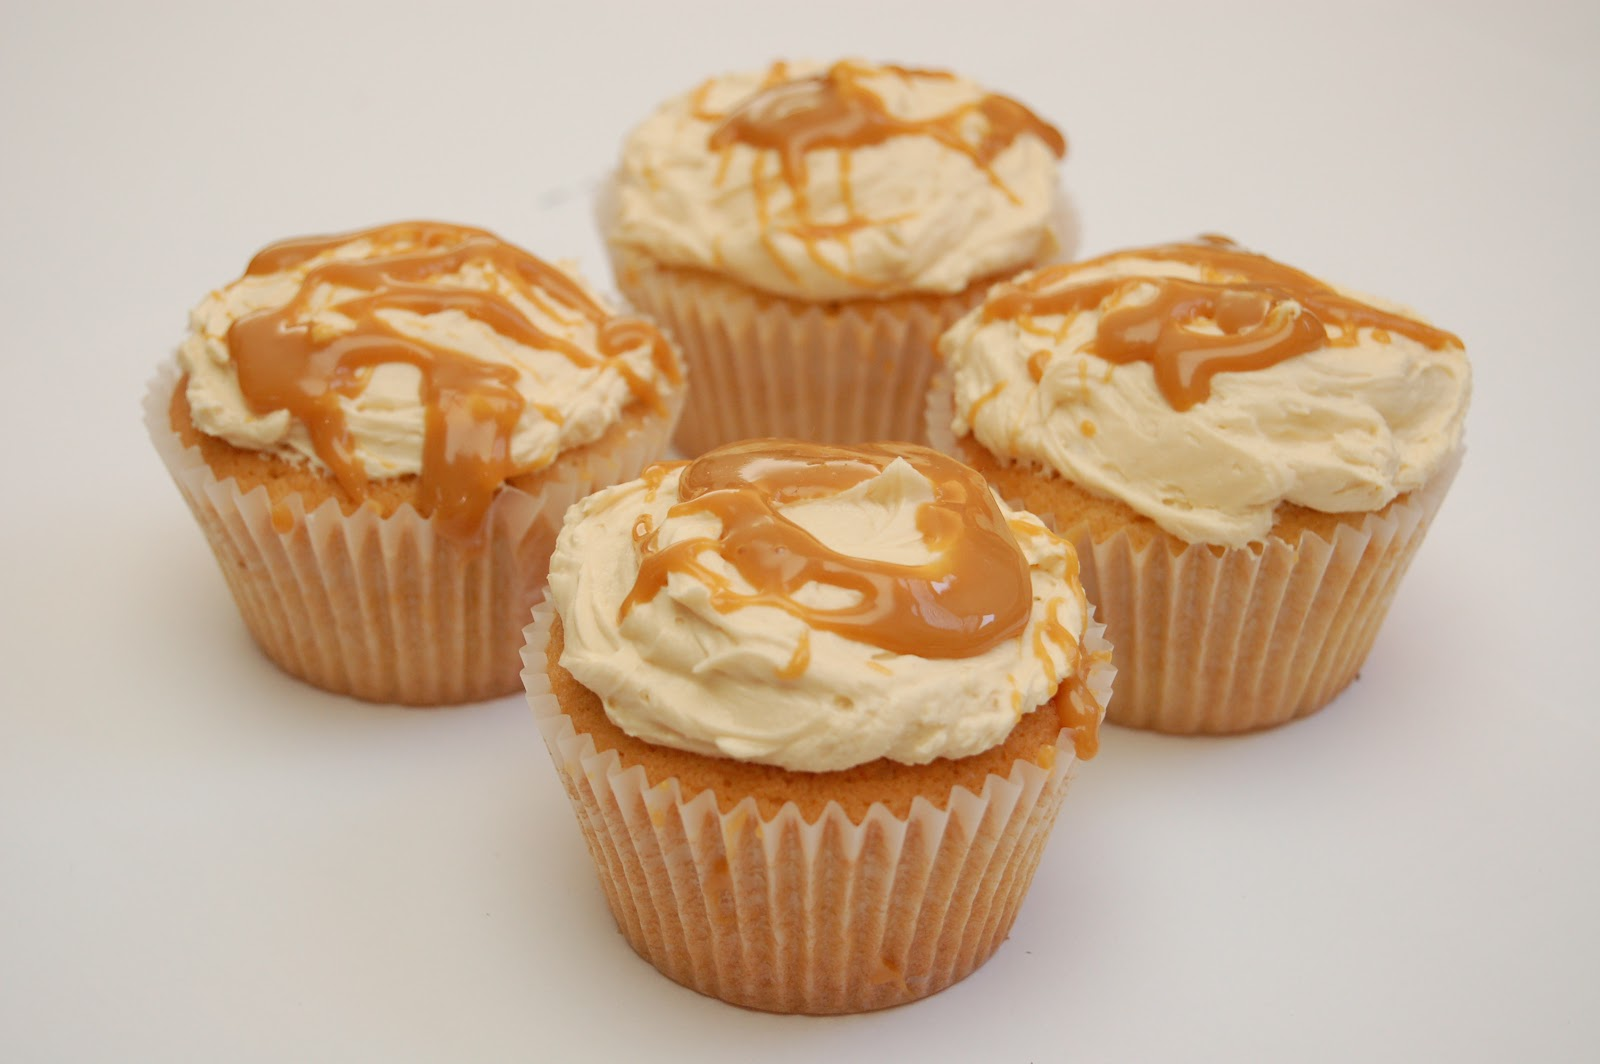 Caramel Frosting Recipe For Cupcakes